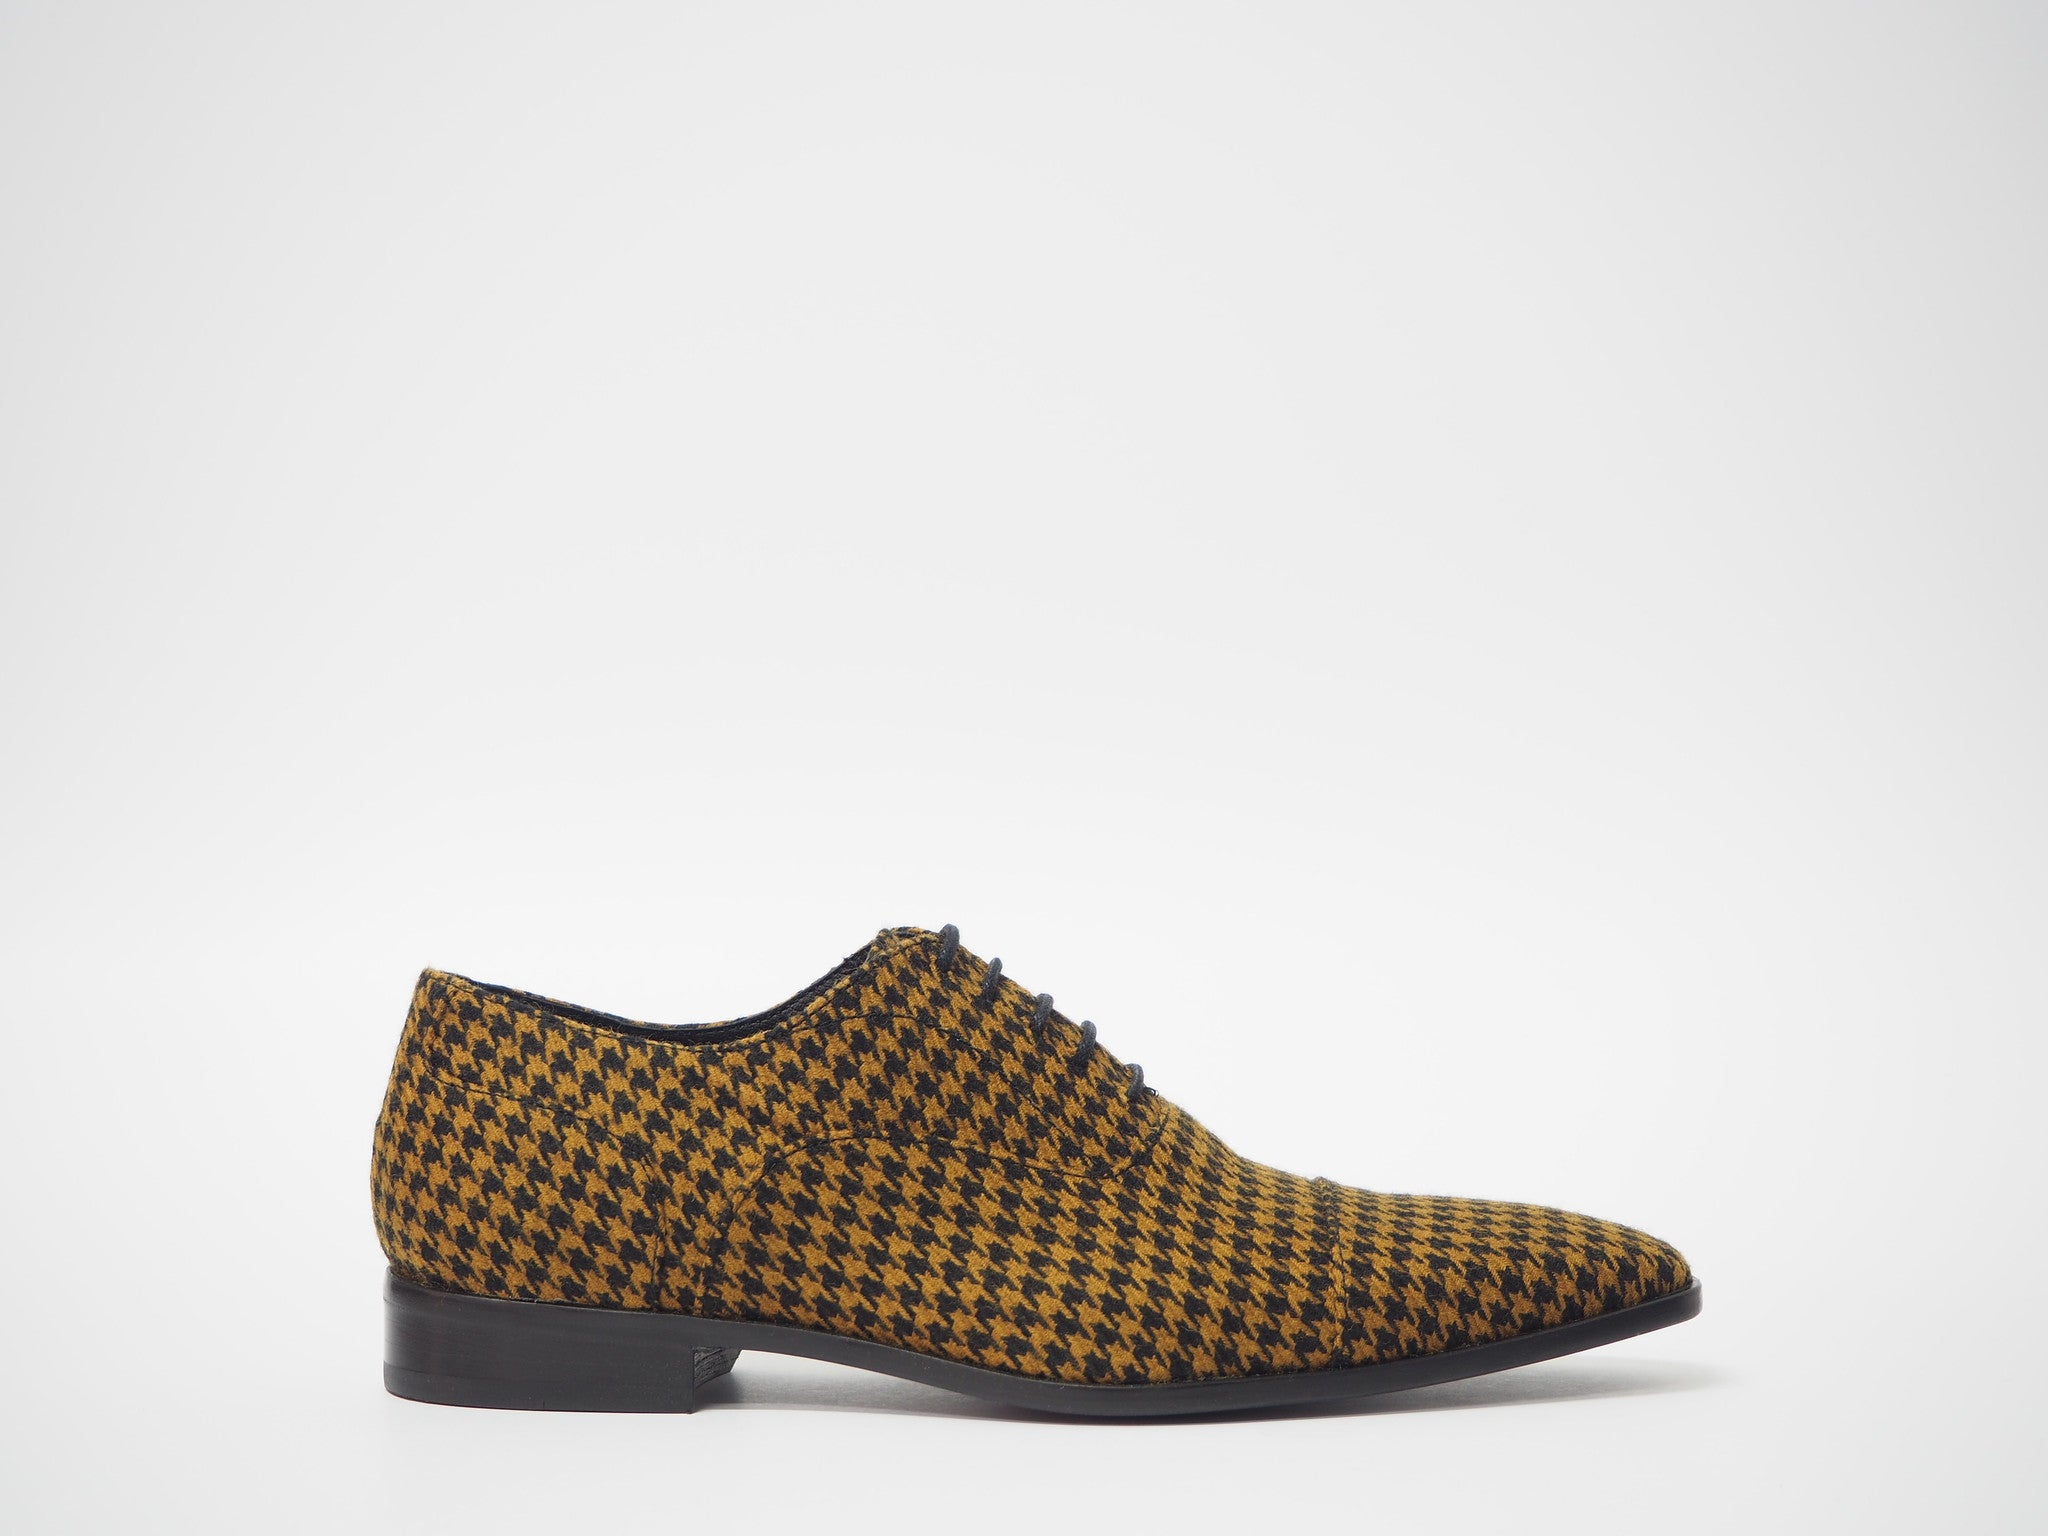 Size 41 - Black & Mustard Pied de Poule Oxford + Belt